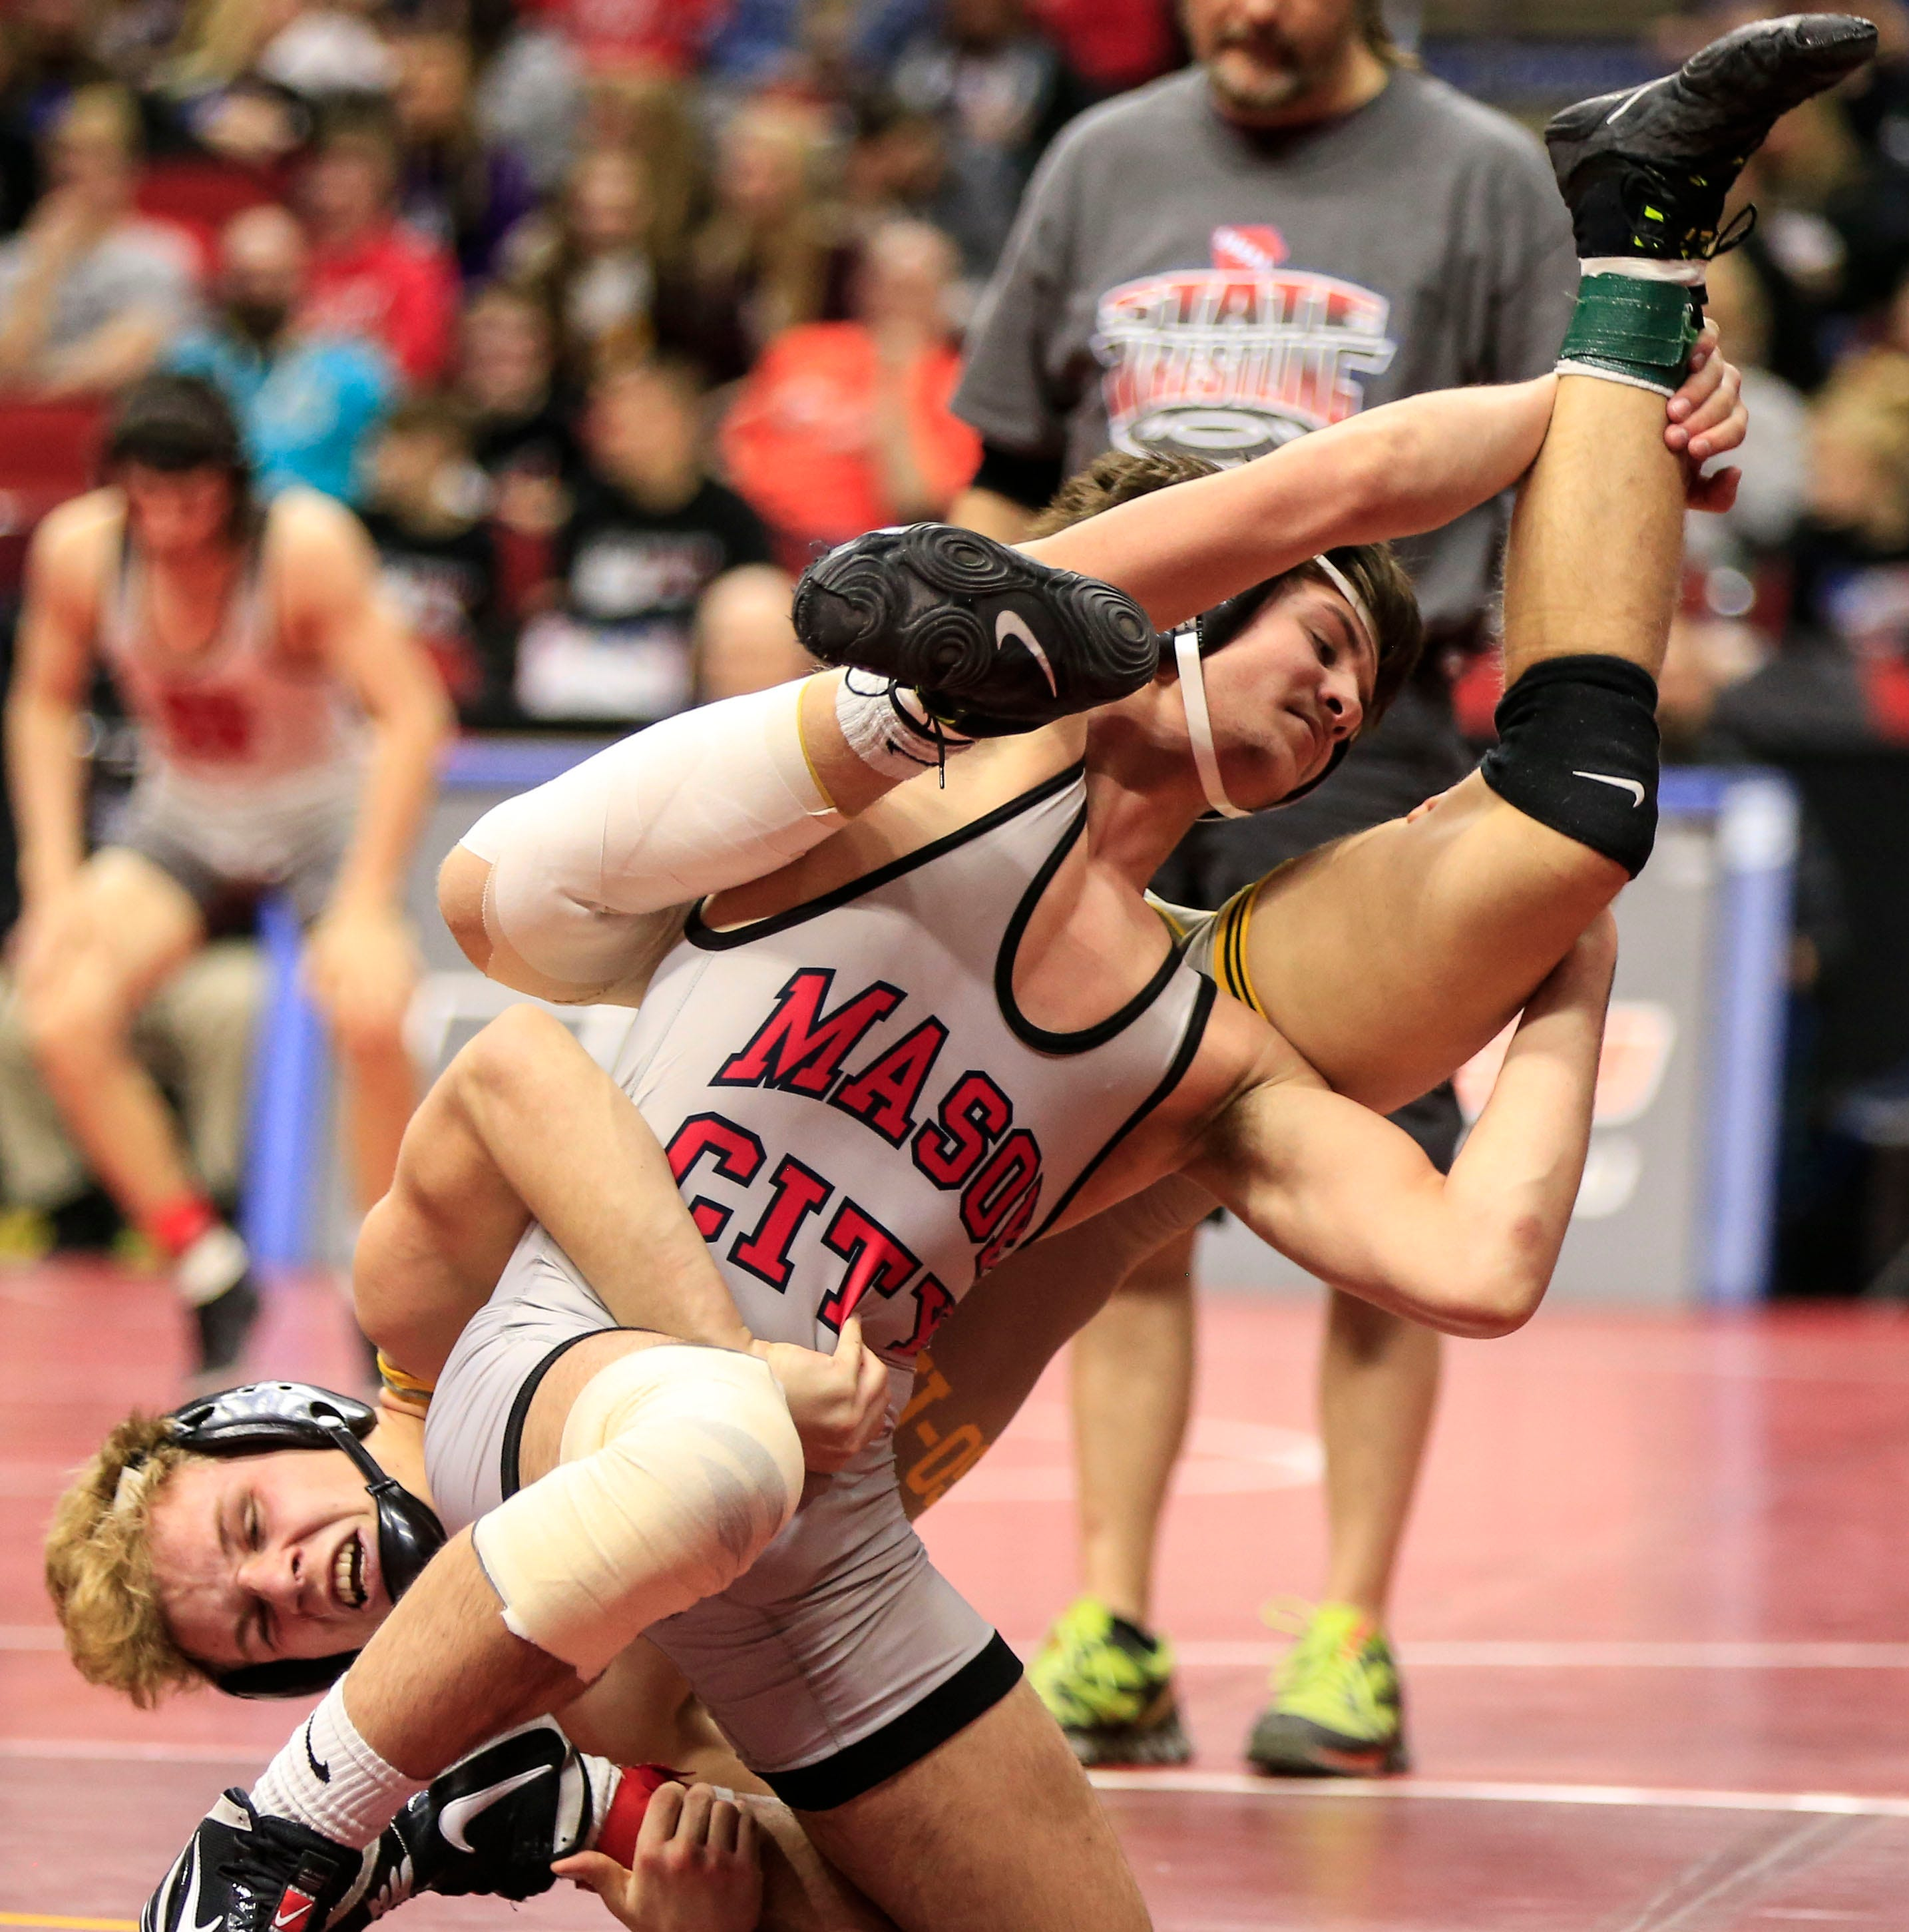 State wrestling: Motivated by brother's semifinal loss, Mason City's Colby Schriever reaches 3A finals